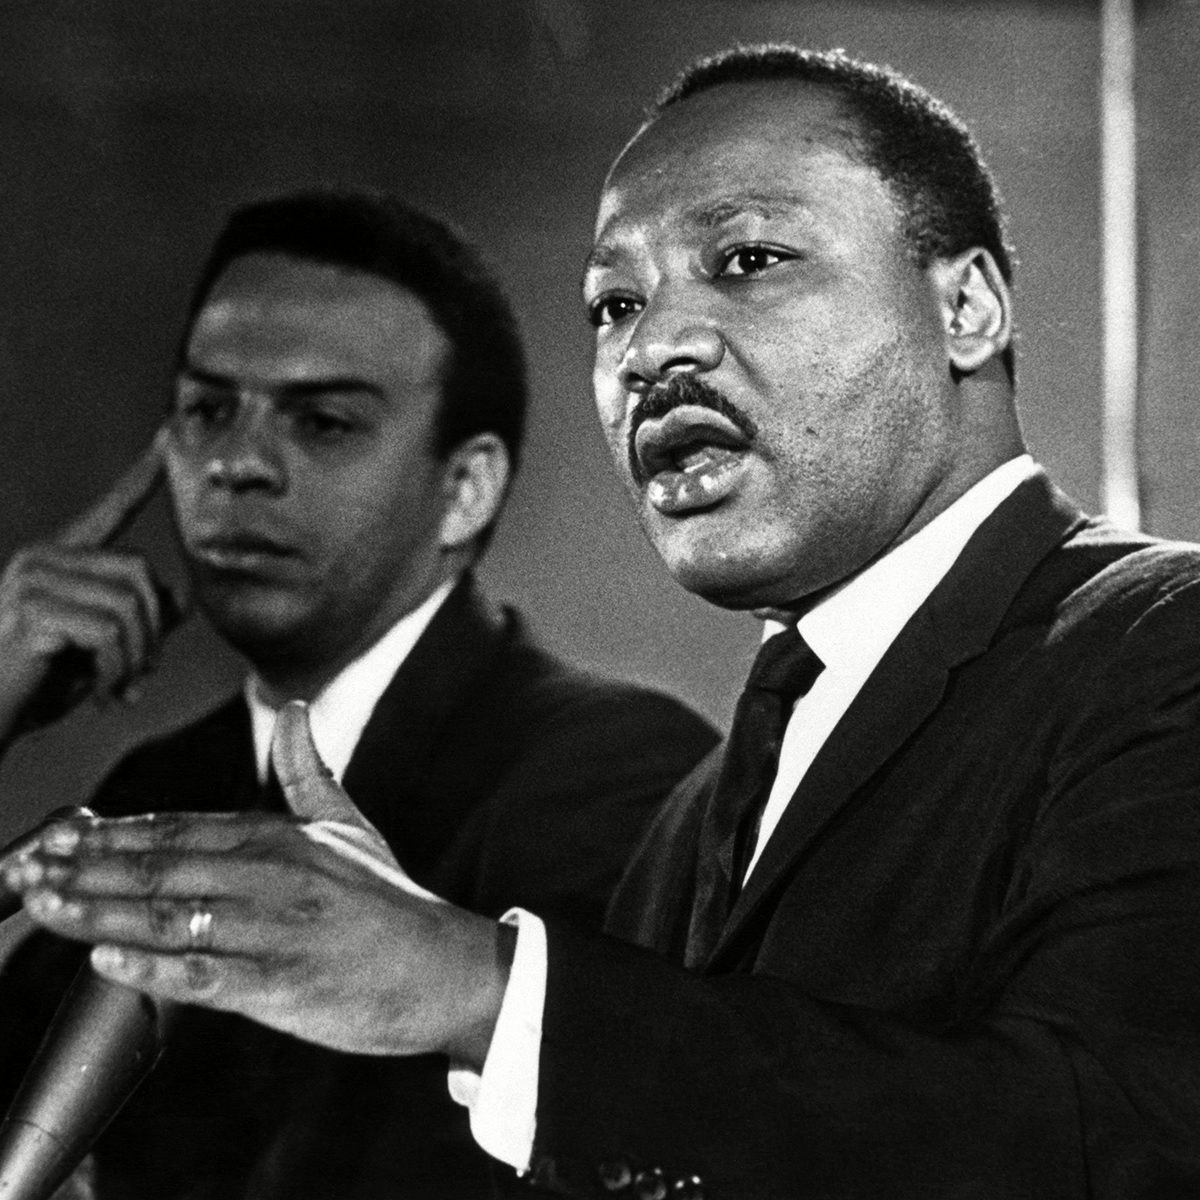 American civil rights activists Andrew Young and Dr. Martin Luther King Jr.